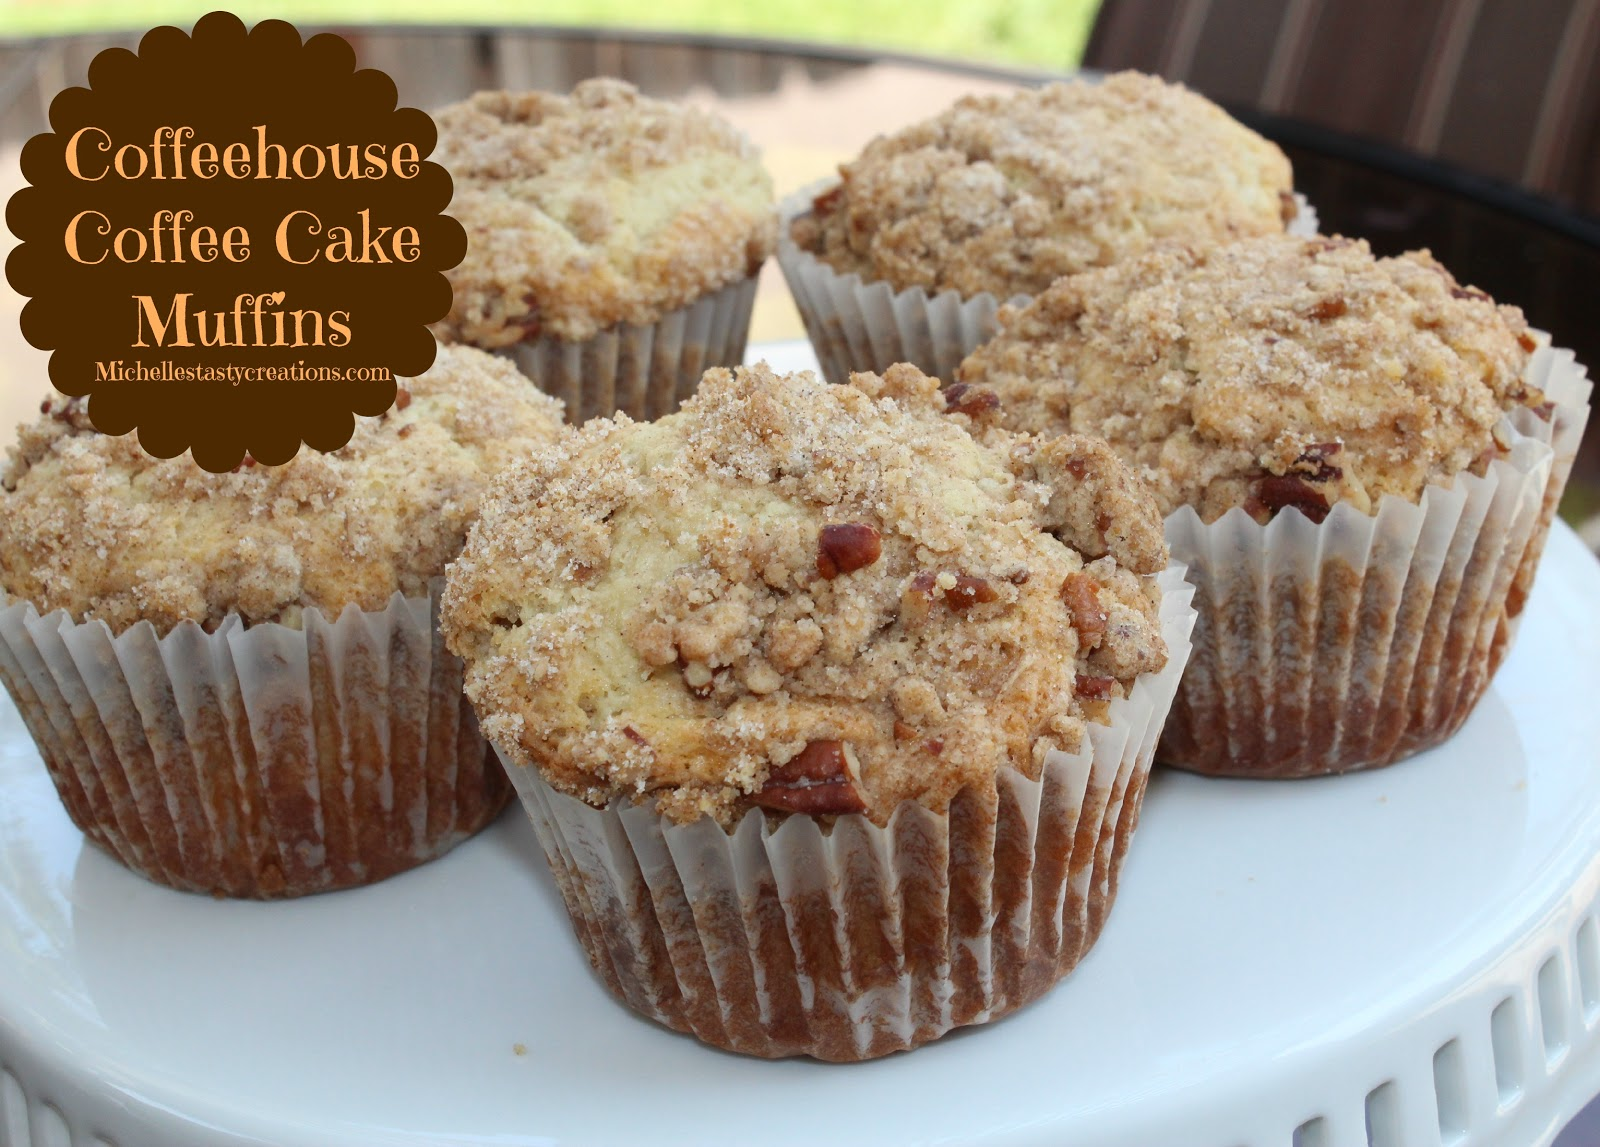 Michelle's Tasty Creations: Coffeehouse Coffee Cake Muffins